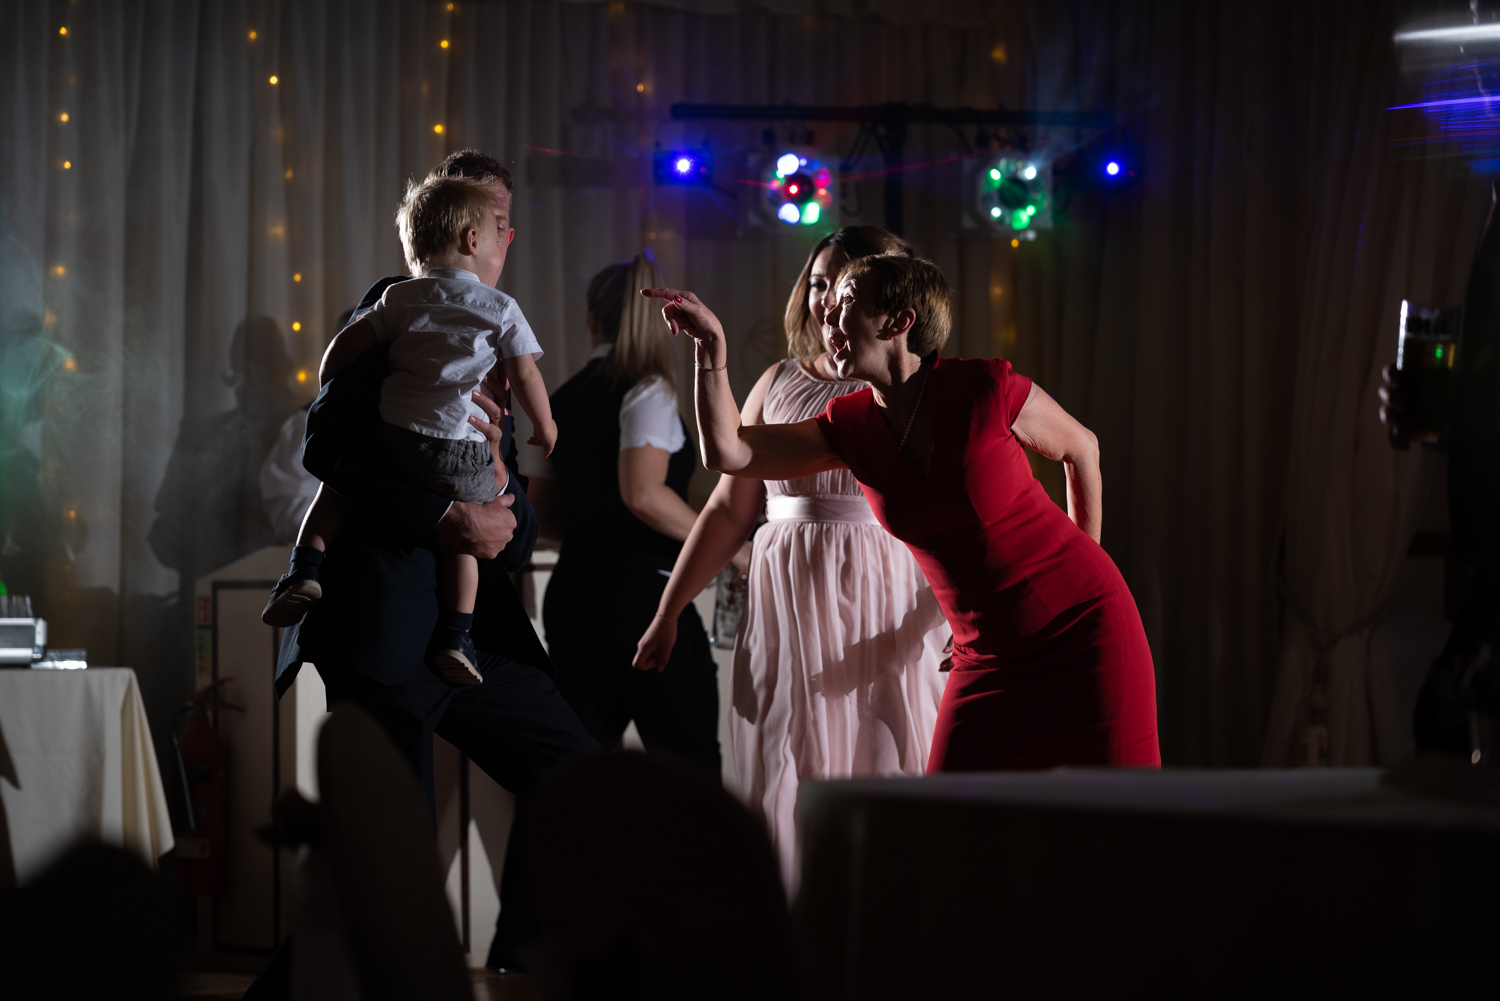 Guests dancing at wedding at Albright Hussey